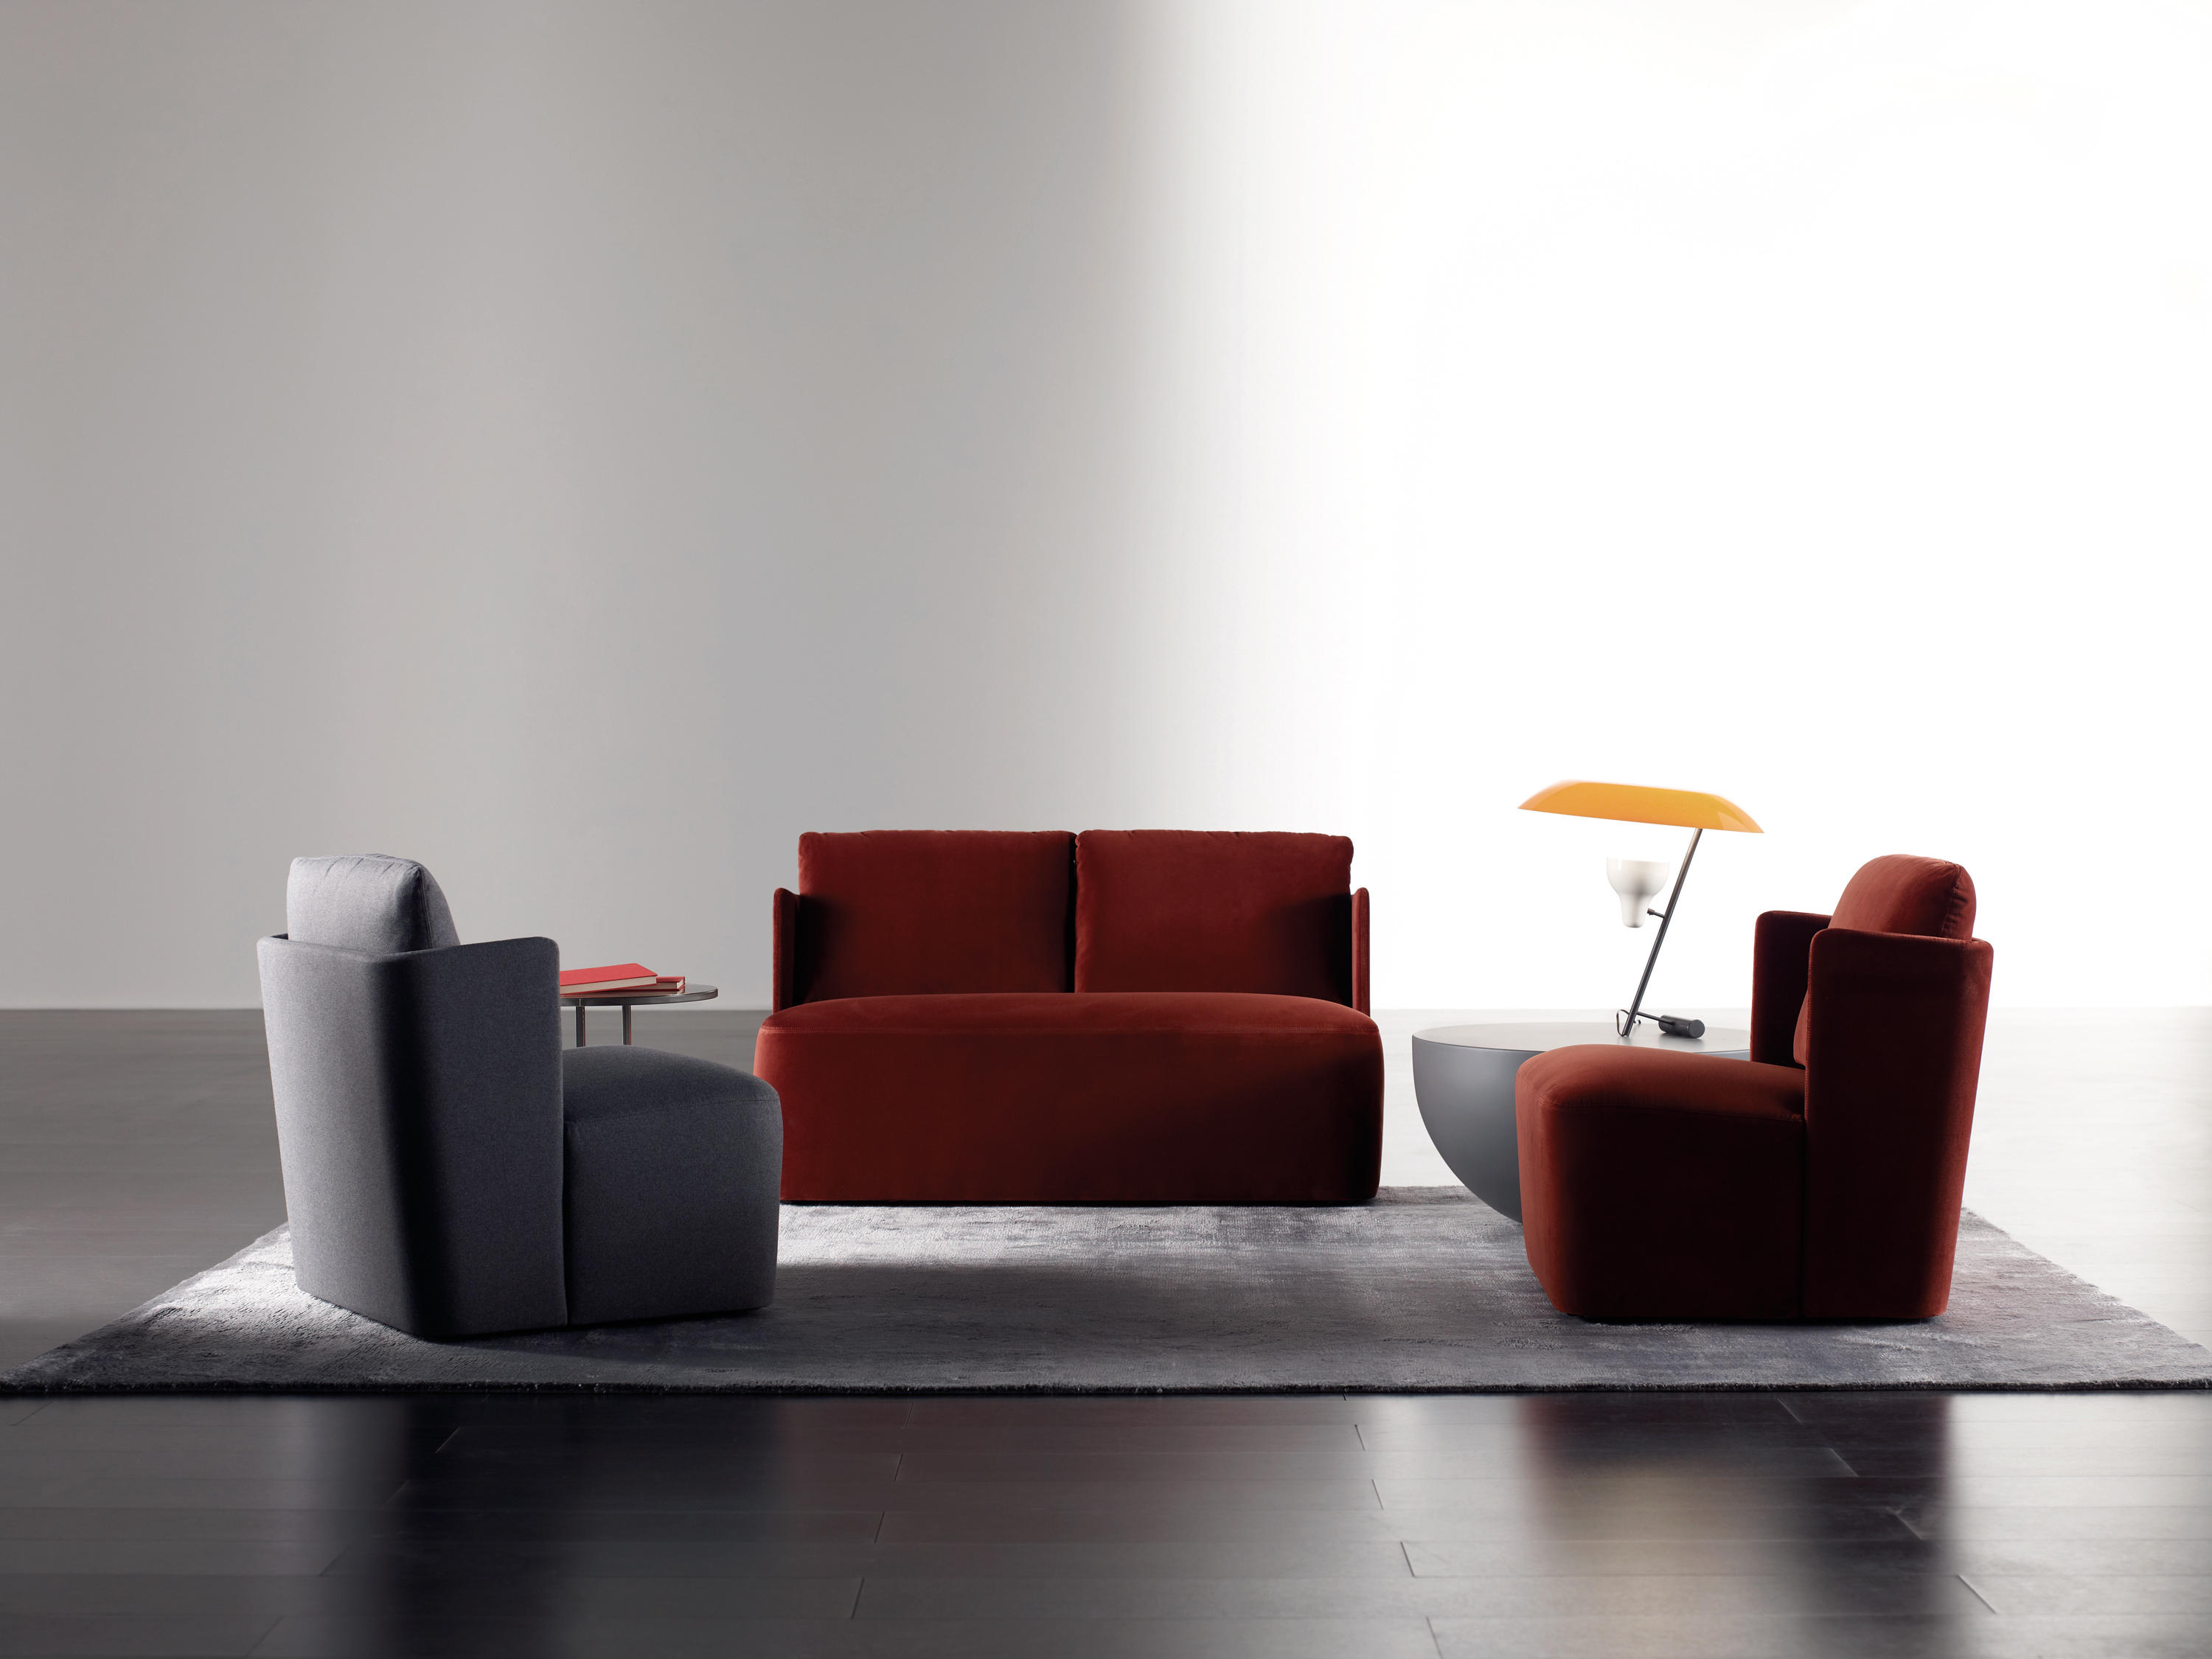 Keeton sofa fit 130 lounge sofas from meridiani architonic keeton sofa fit 130 by meridiani lounge sofas parisarafo Image collections